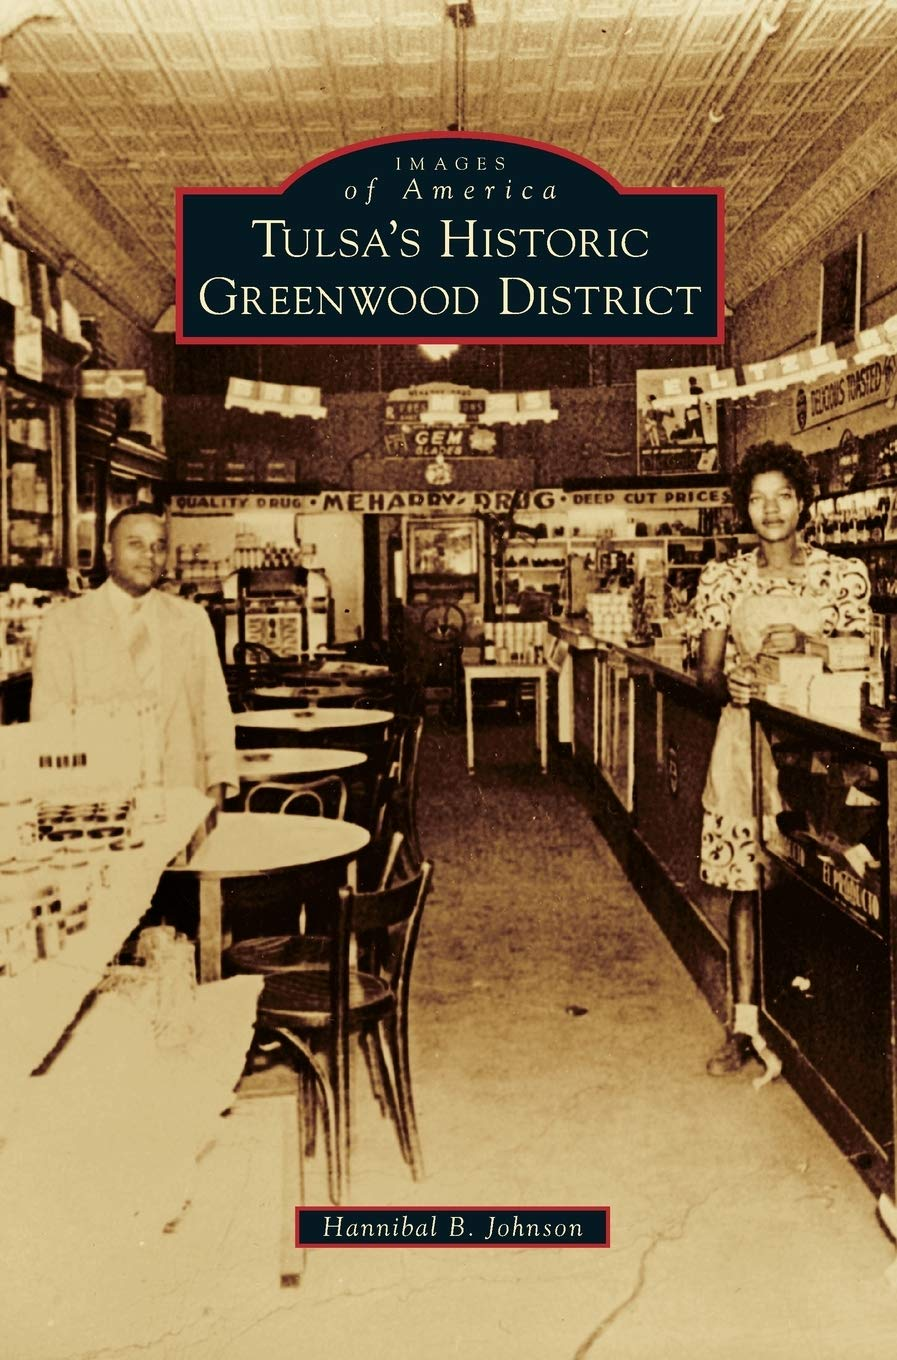 Tulsa's Historic Greenwood District